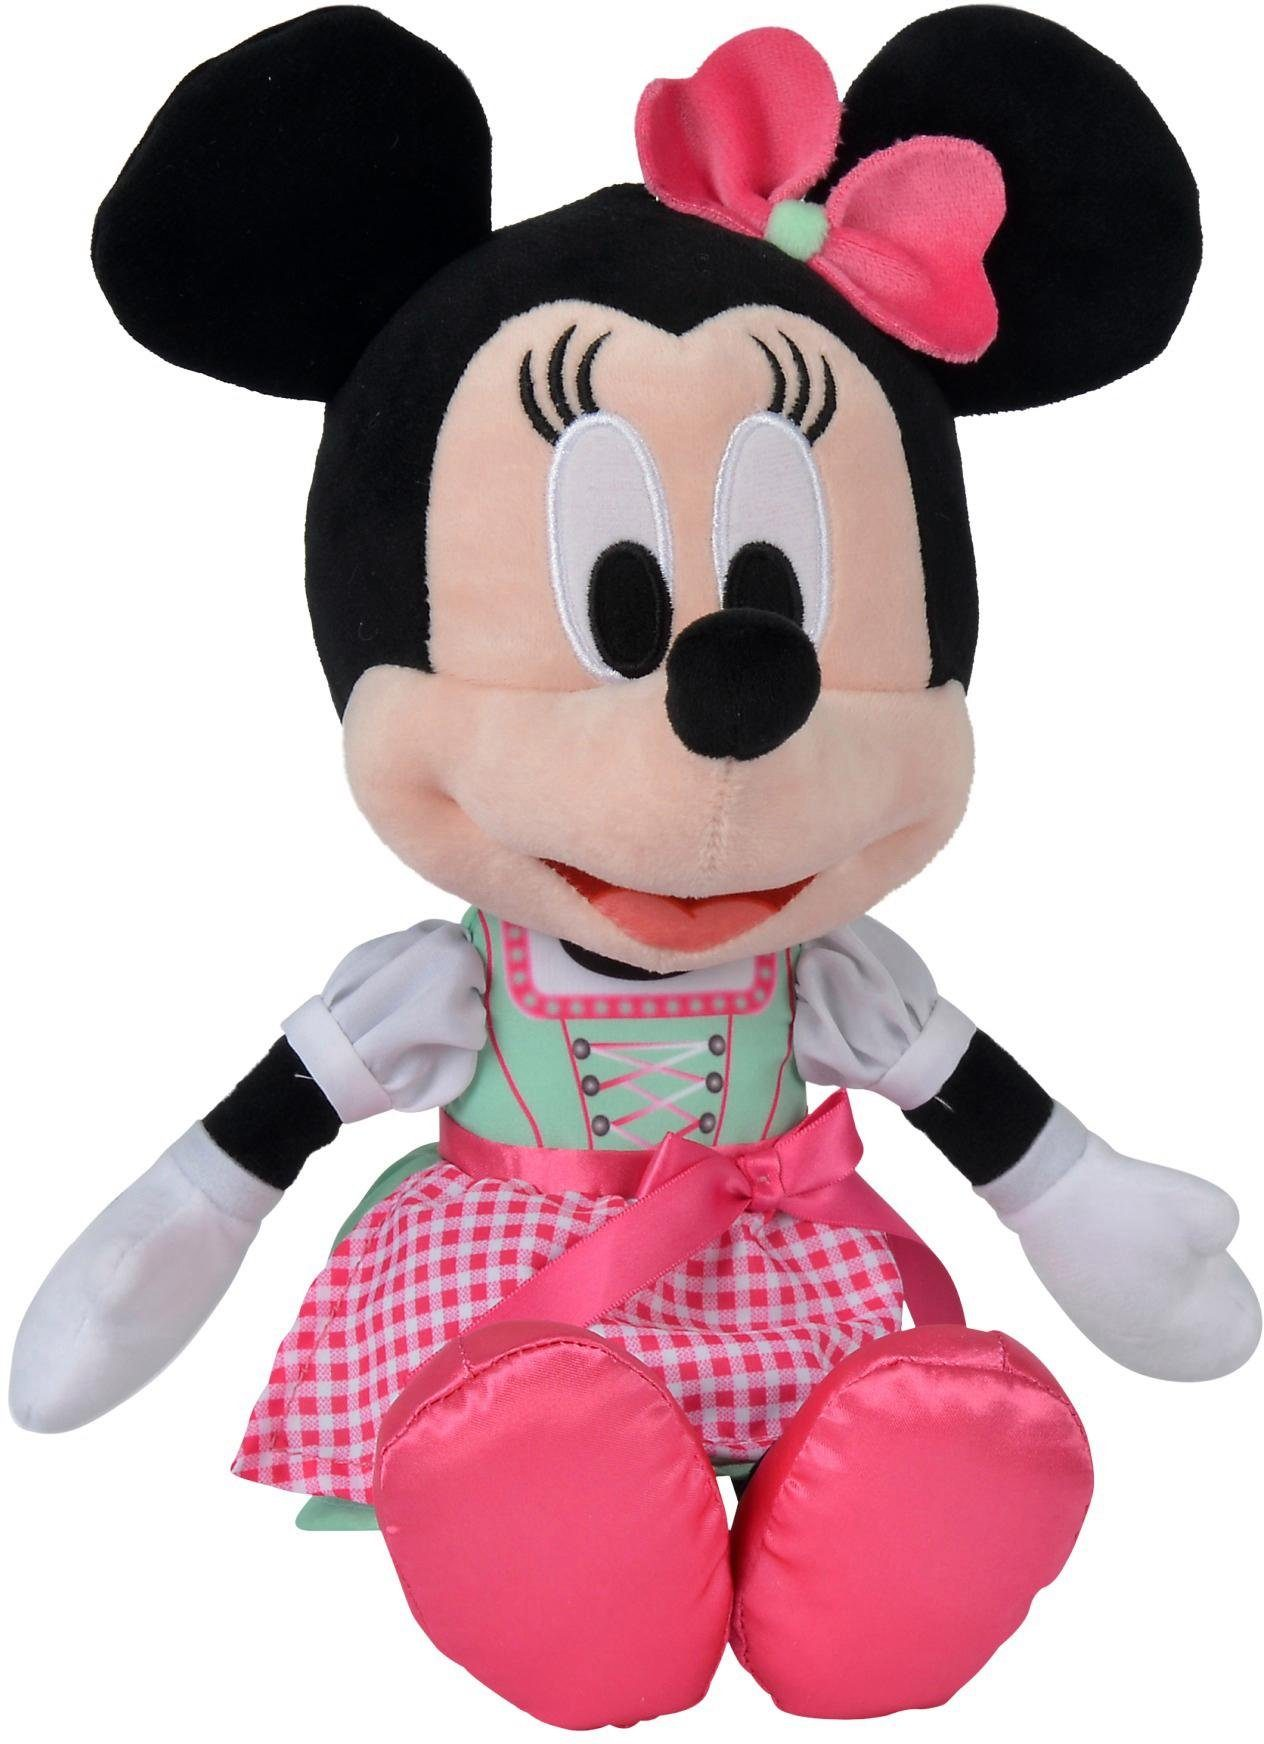 Simba Plüschfigur, »Disney Dirndl Minnie, Refresh, 35 cm«